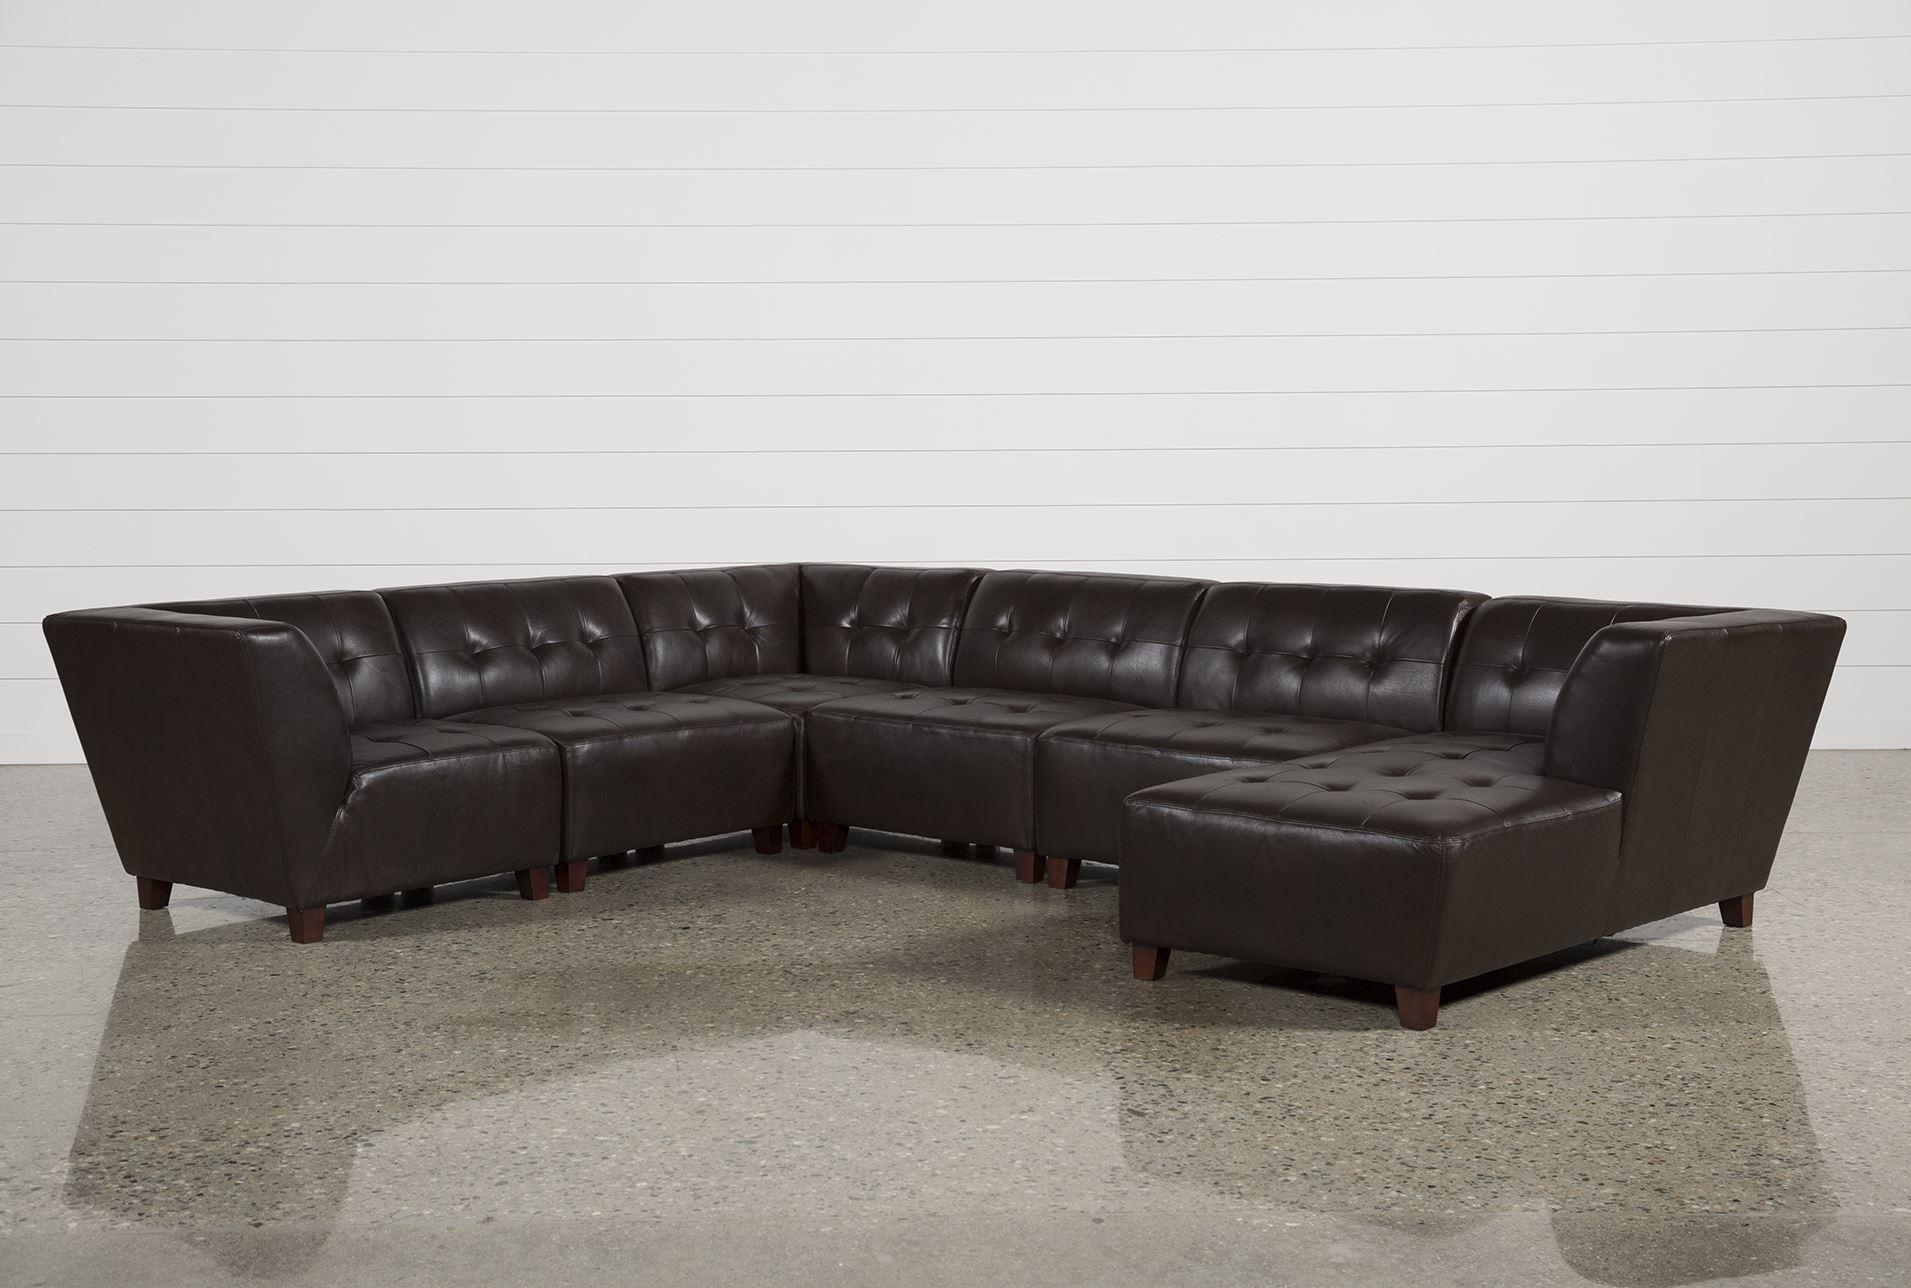 Stunning 6 Piece Leather Sectional Sofa 68 For Your Sectional In Leather Sectional Sofas Toronto (View 9 of 20)